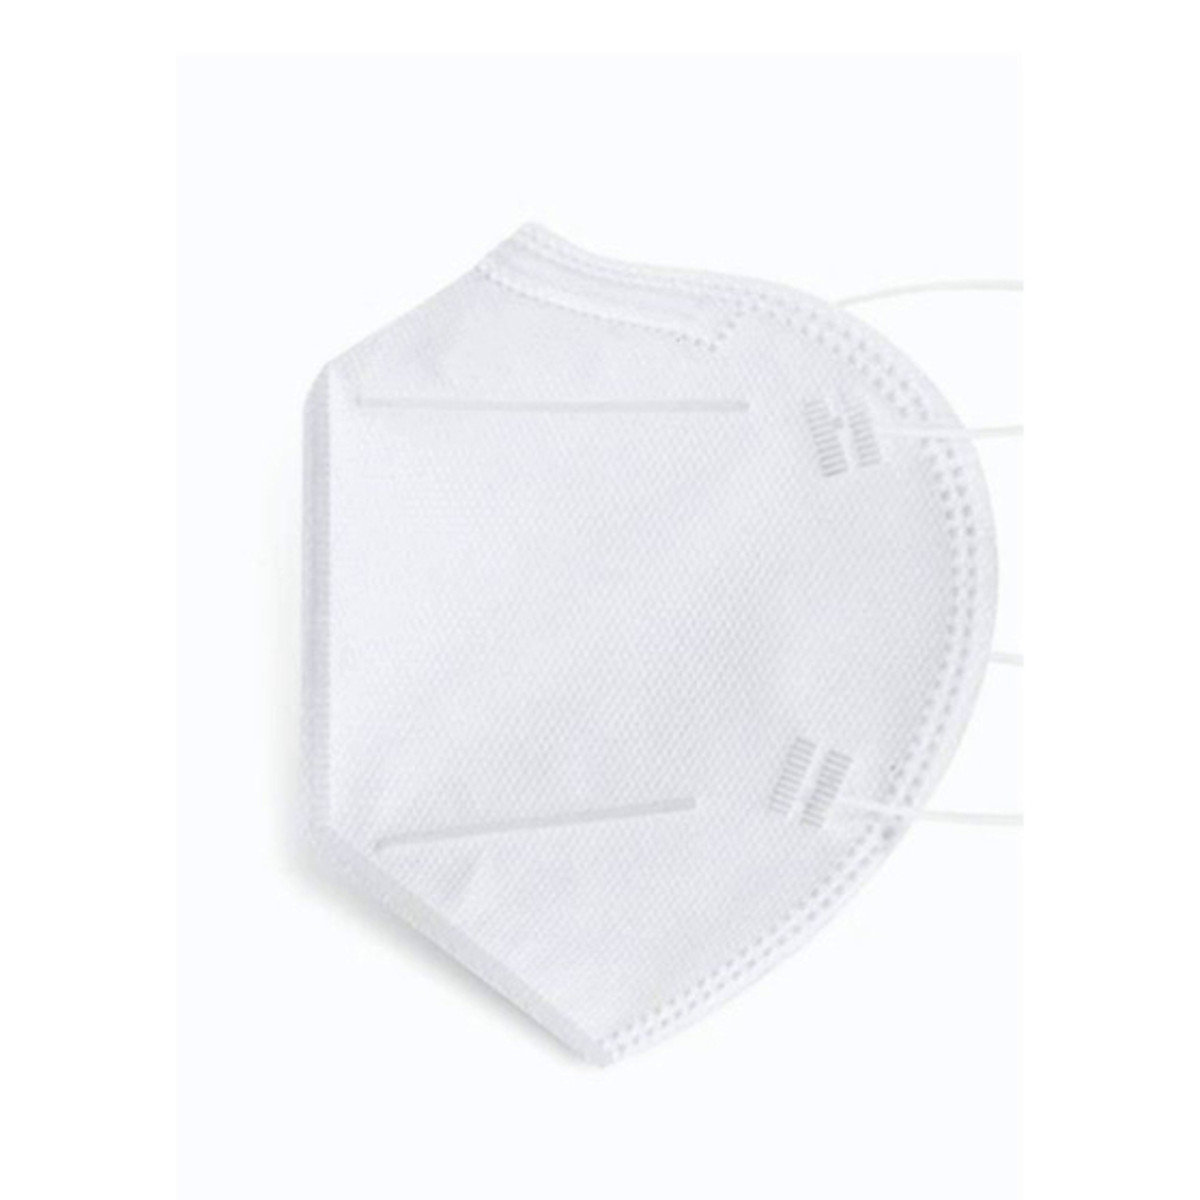 View larger image of KN95 Disposable Masks - 10 Pack